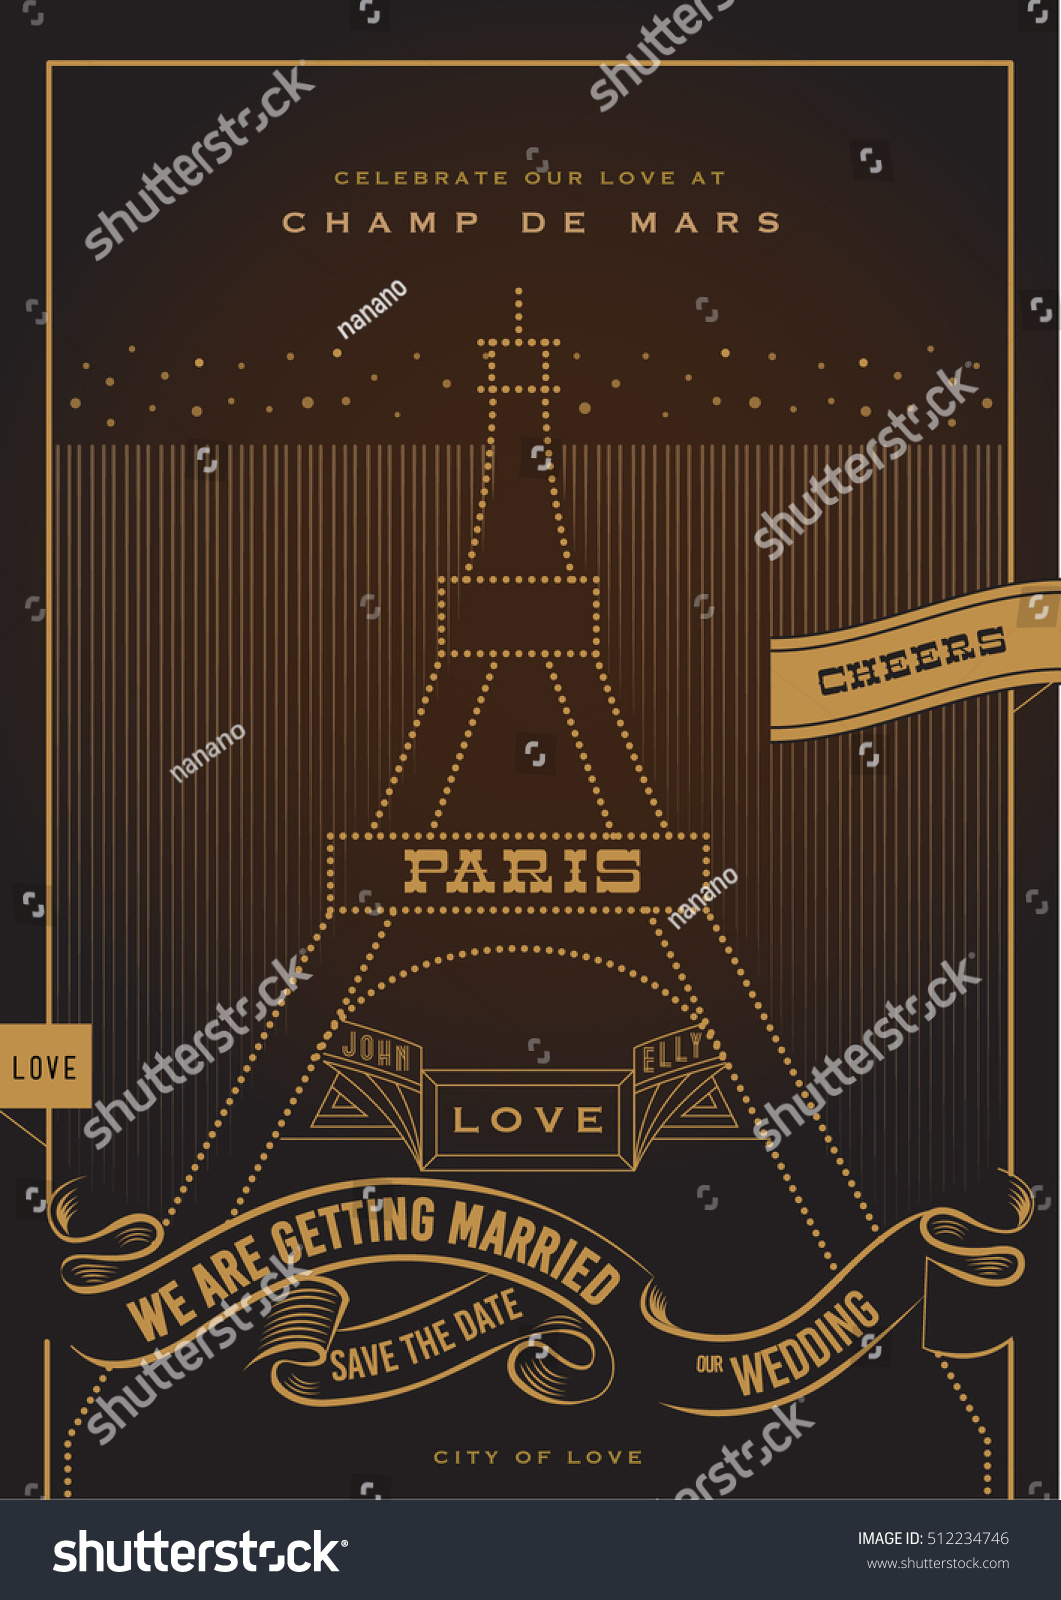 City love wedding invitation valentines day stock vector 512234746 city of love wedding invitation valentines day proposal card art deco stopboris Image collections